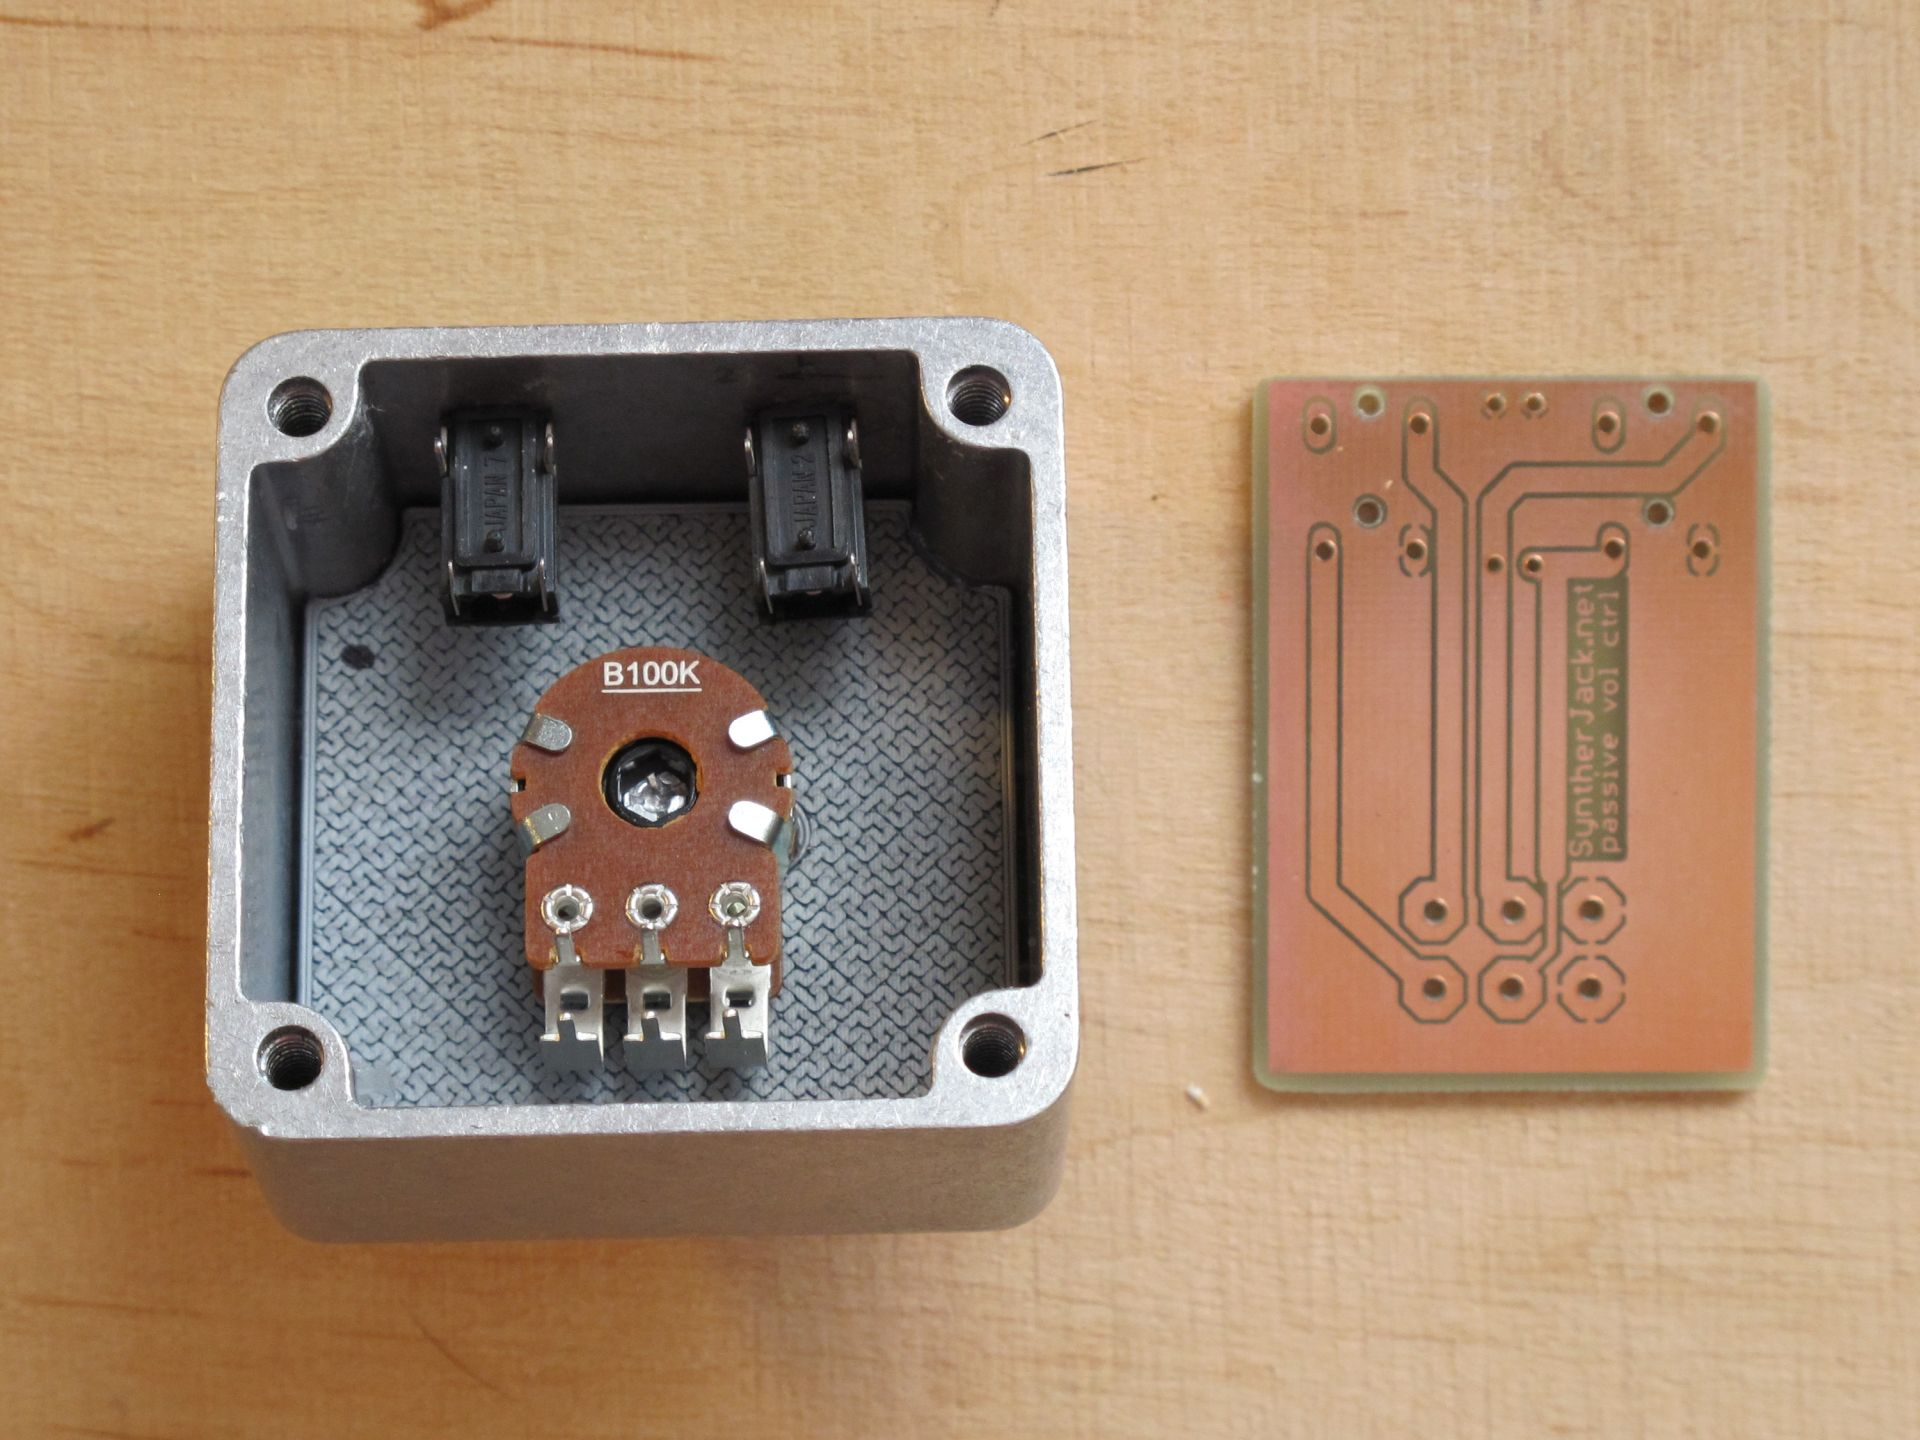 Case and etched PCB